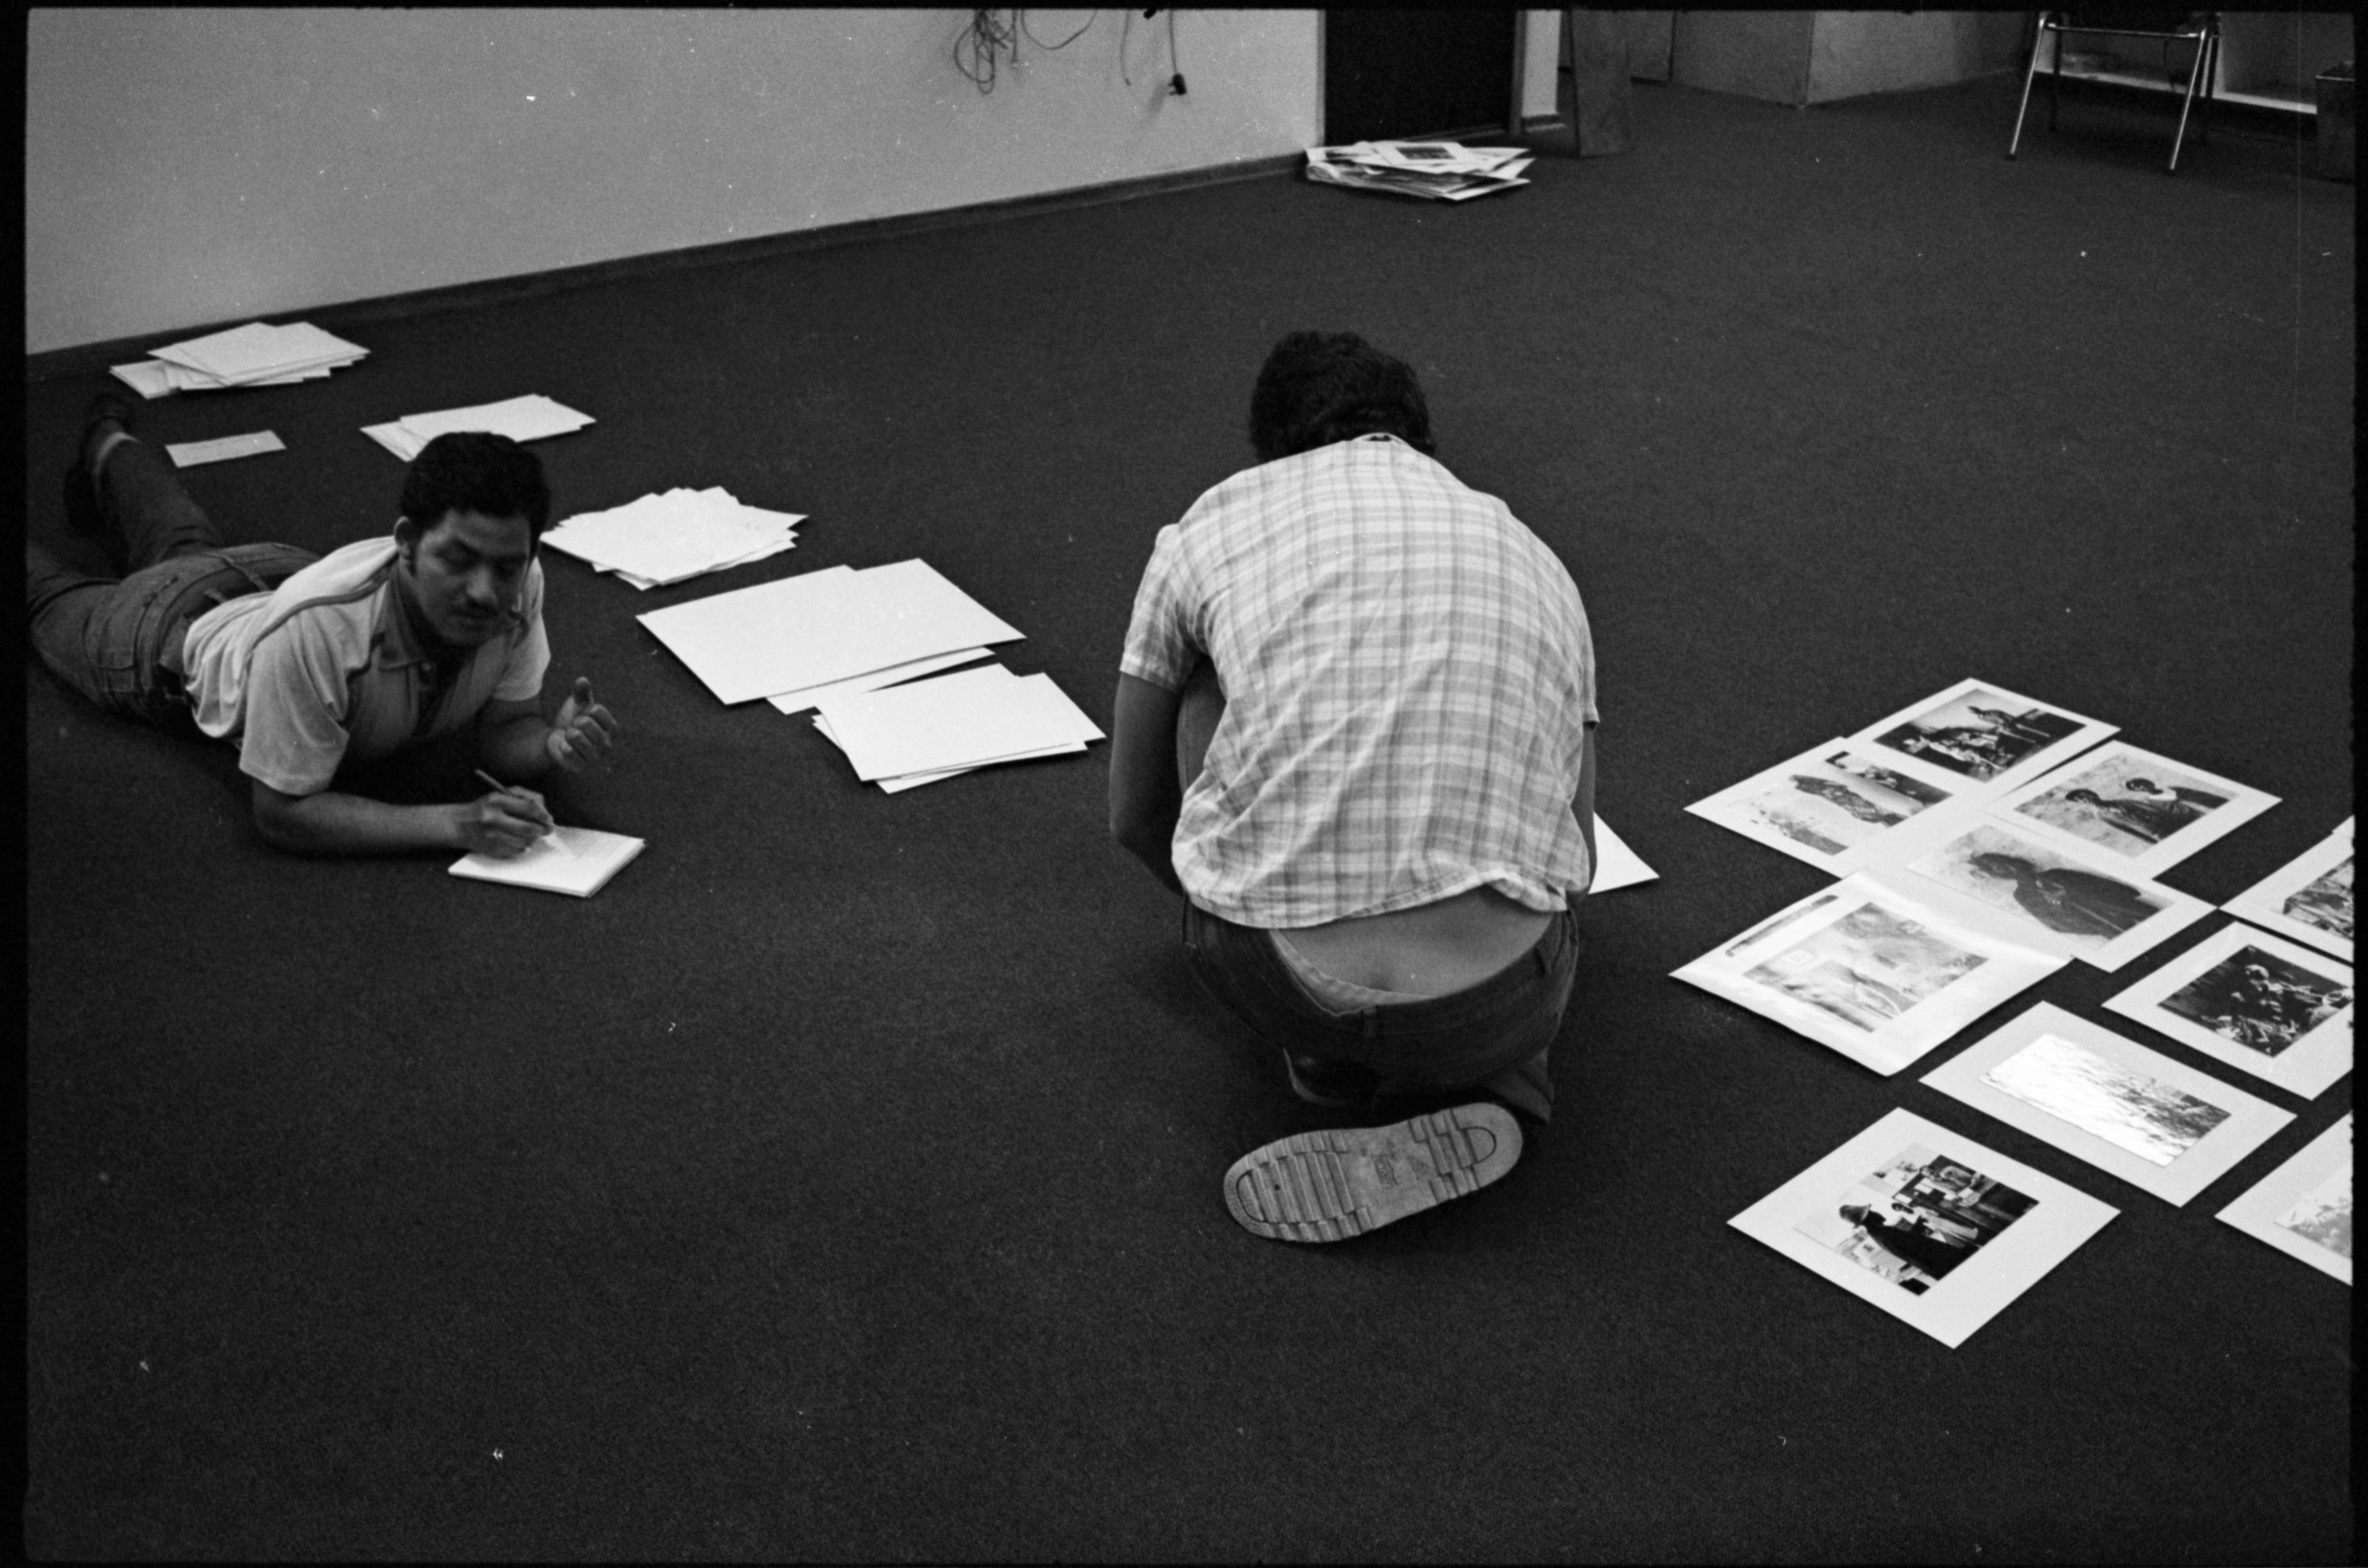 Paul Weinberg and Chris Van Wyk selecting images for the first Staffrider exhibition 1983